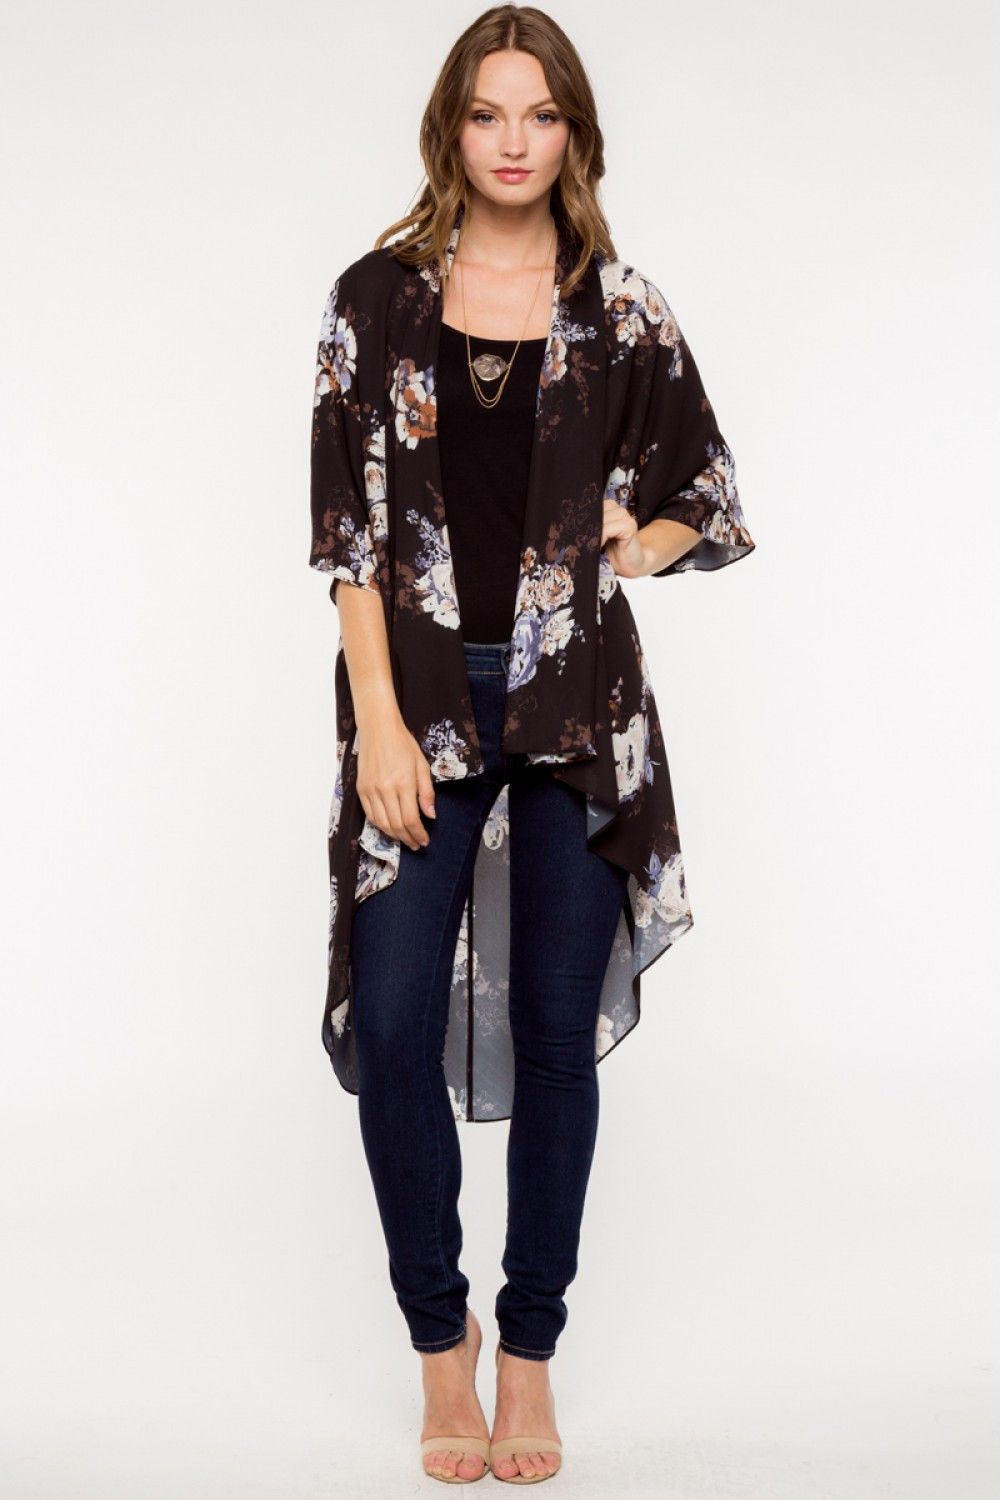 Description: Kimono cardigans are perfect to throw on over just ...